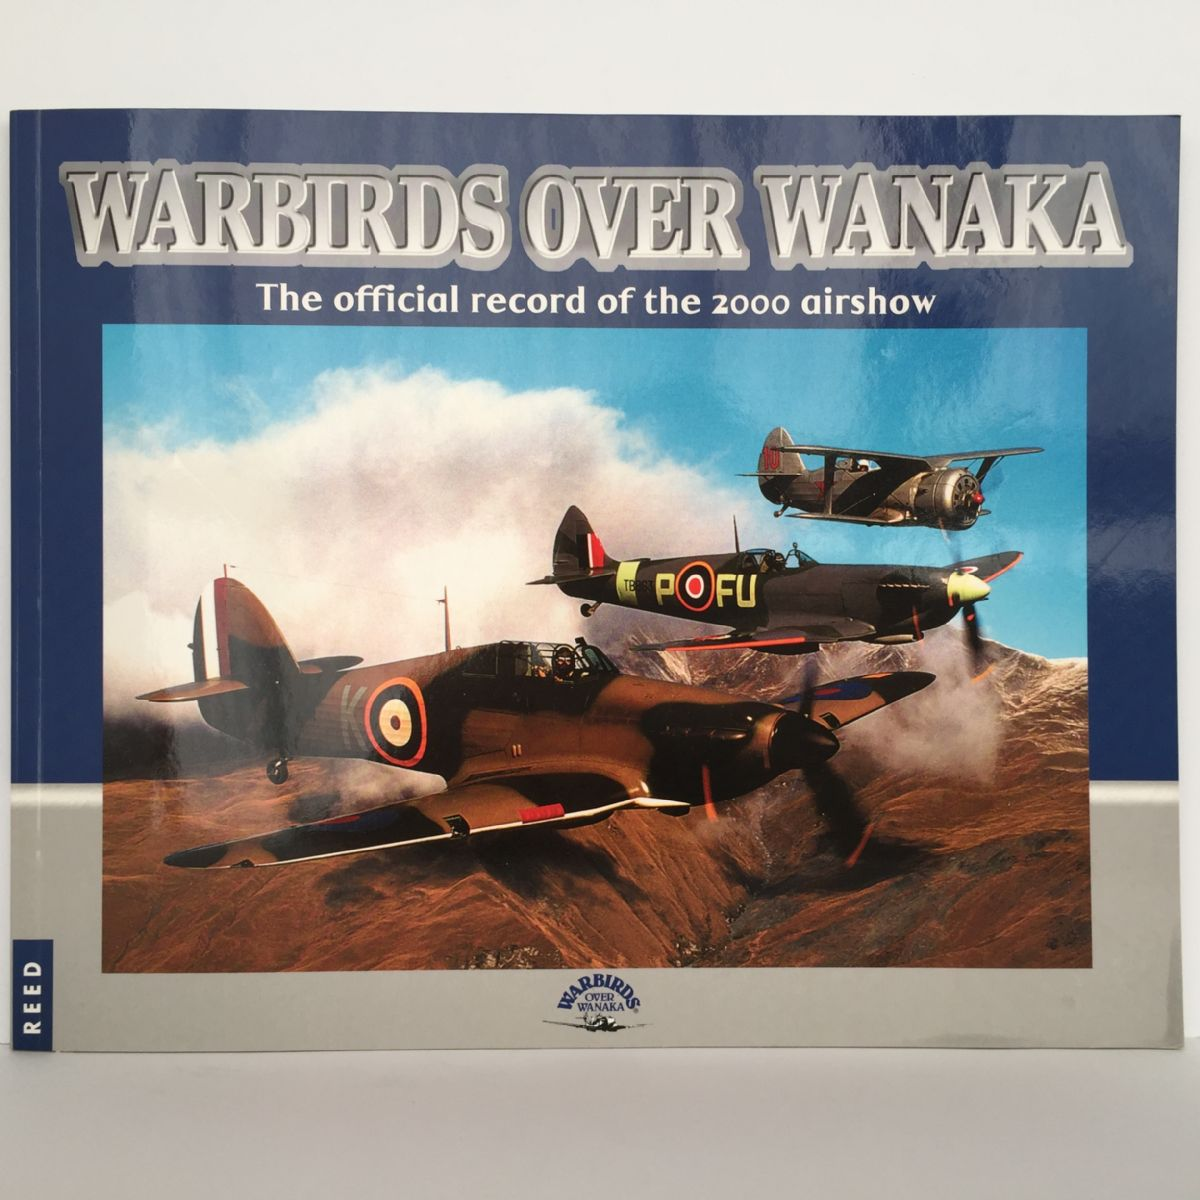 Warbirds Over Wanaka : The Official Record of the 2000 Airshow